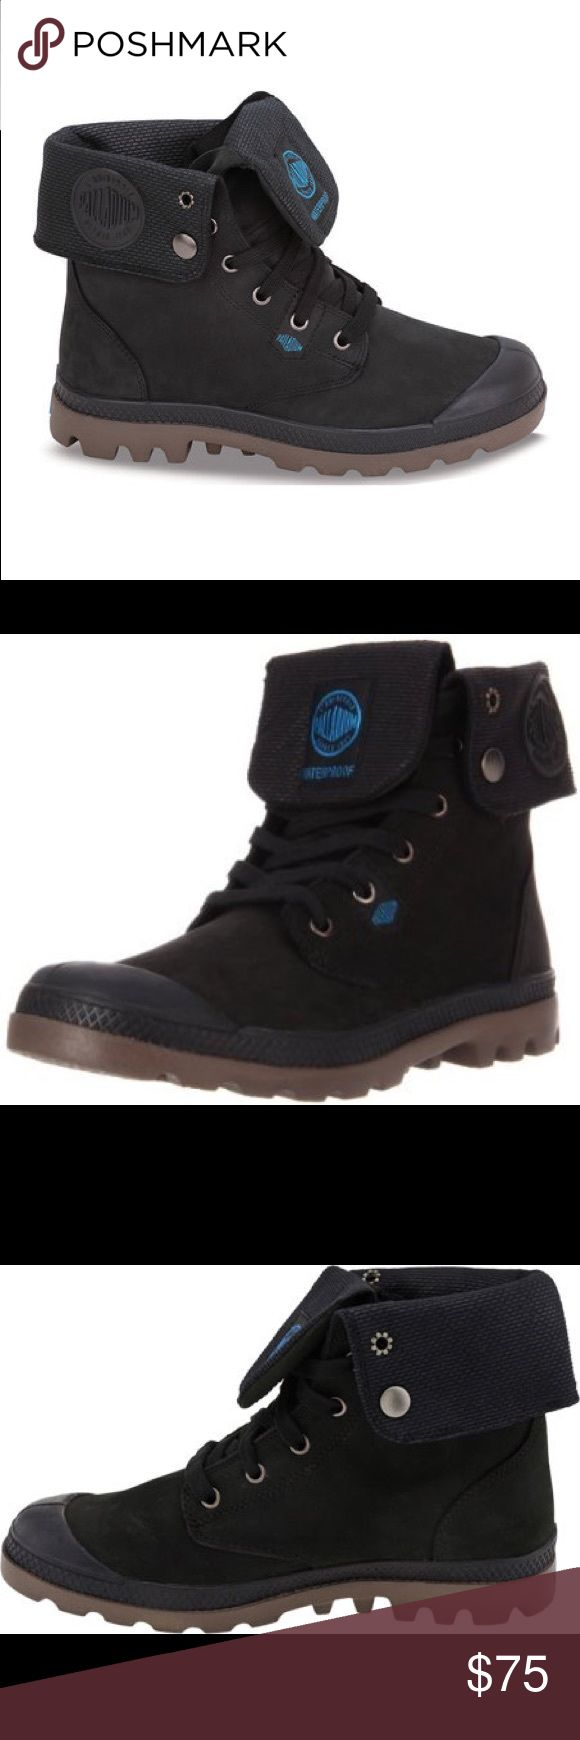 🔥 Palladium Waterproof Leather Boots 🔥 Waterproof leather boots, only worn a few times.  Can be worn folded down or up (has snaps).  Oiled Nubuck leather, blue Palladium logo.  Single-unit molded rubber outside, EVA-cushioned footbed. Palladium Shoes Lace Up Boots